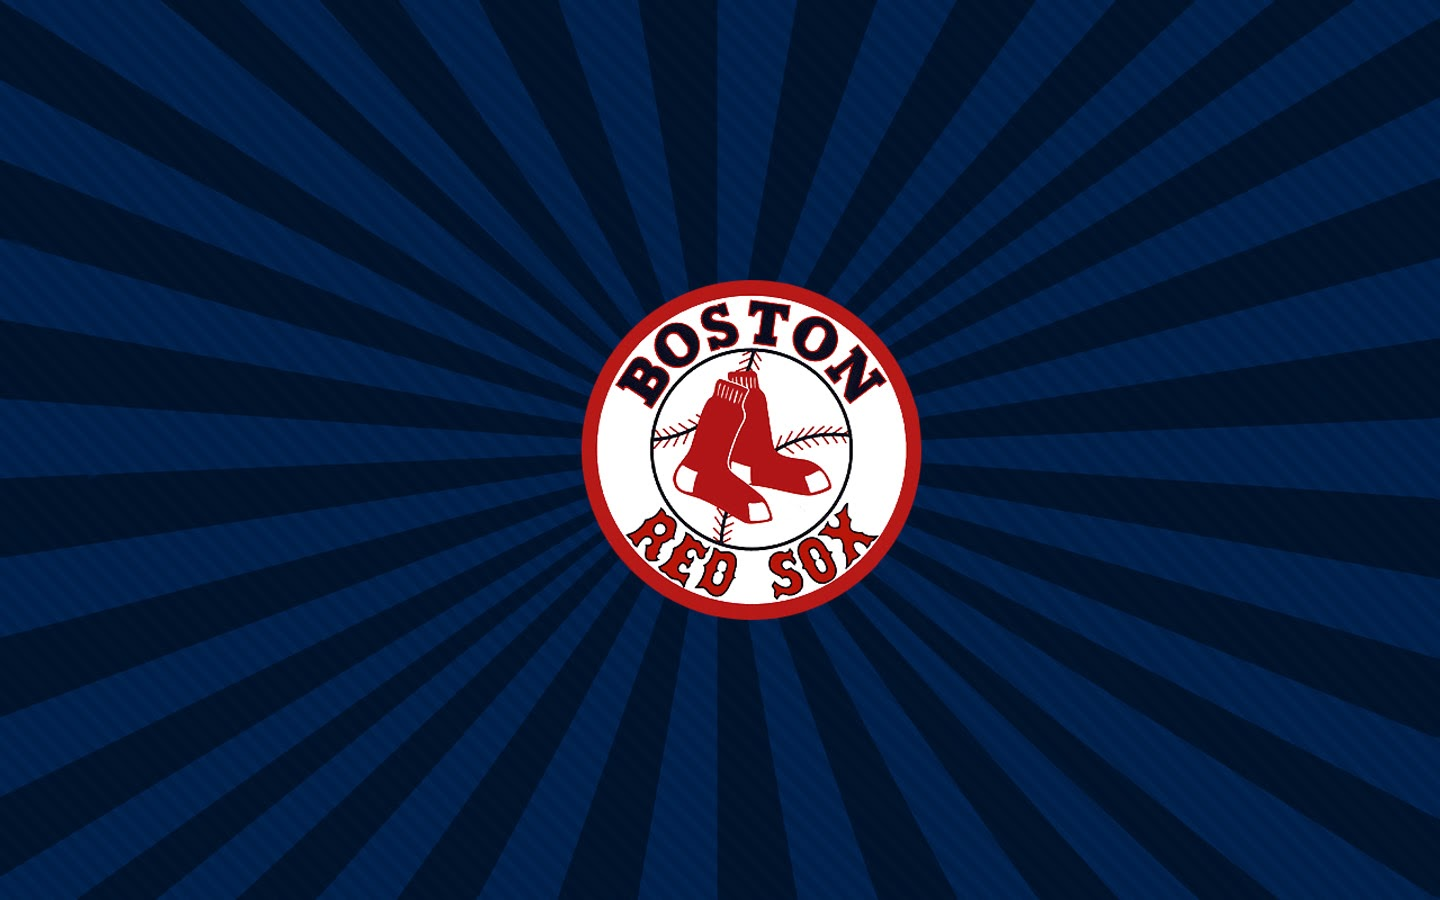 Boston red sox wallpaper backgrounds wallpapersafari - Red sox iphone background ...